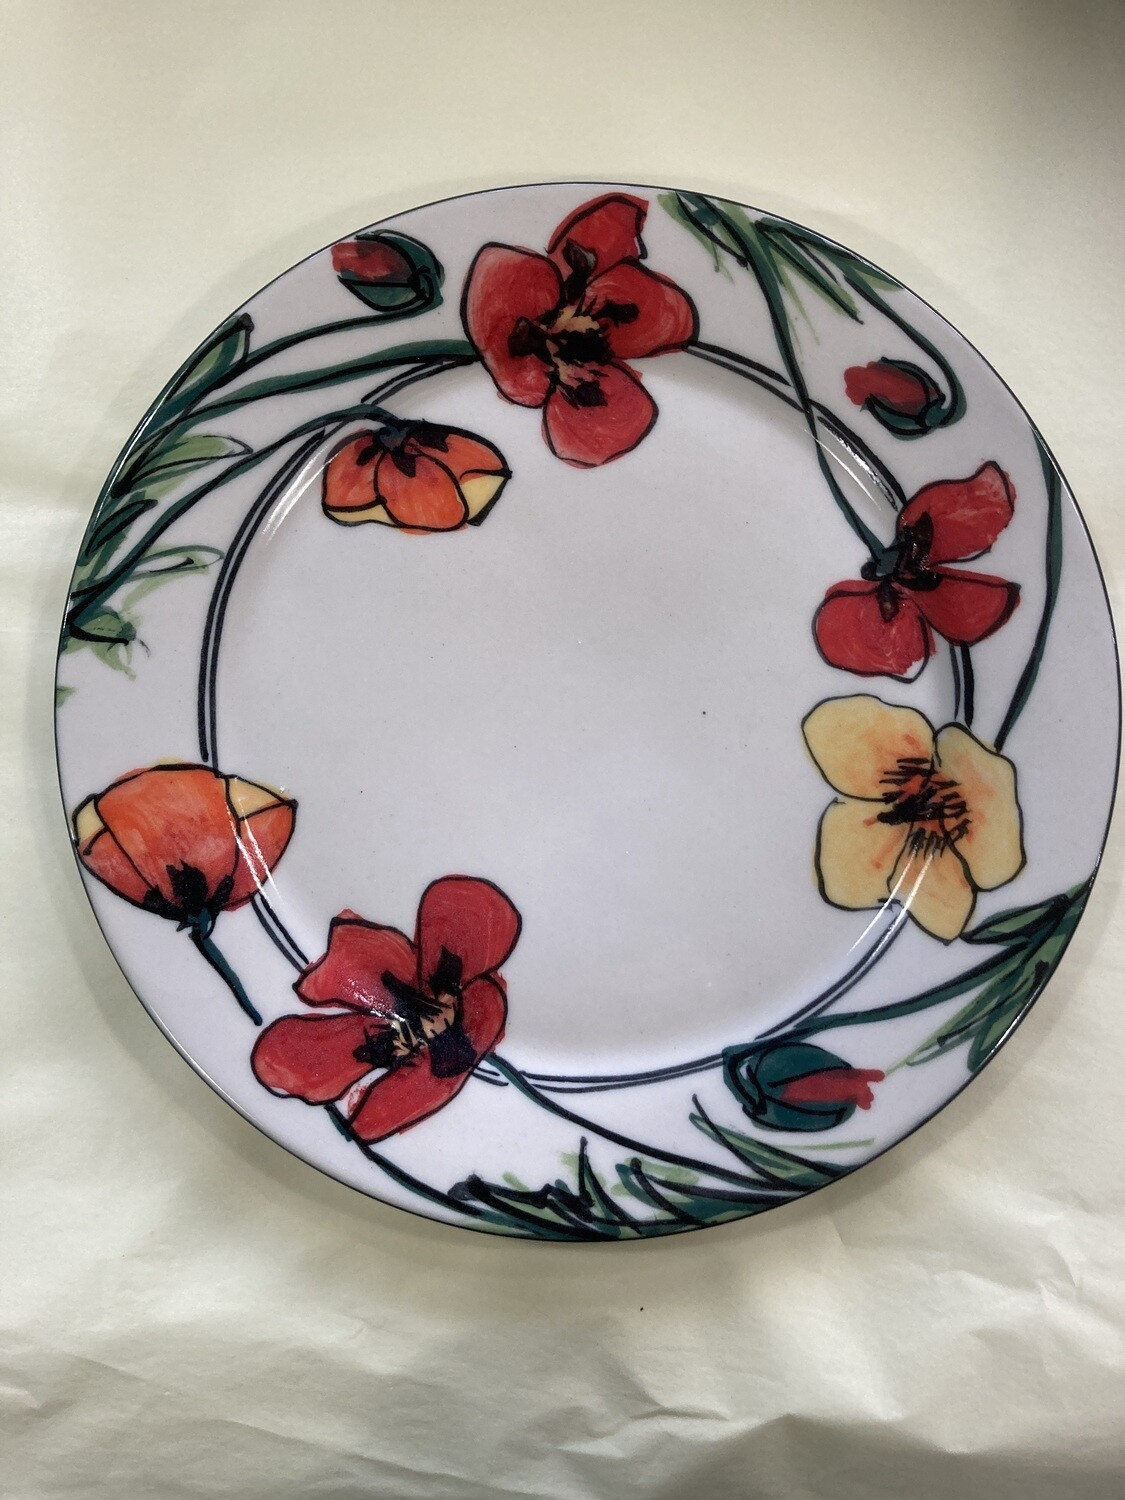 MARY LOU PITTARD - Lunch Plate 25cm(D)